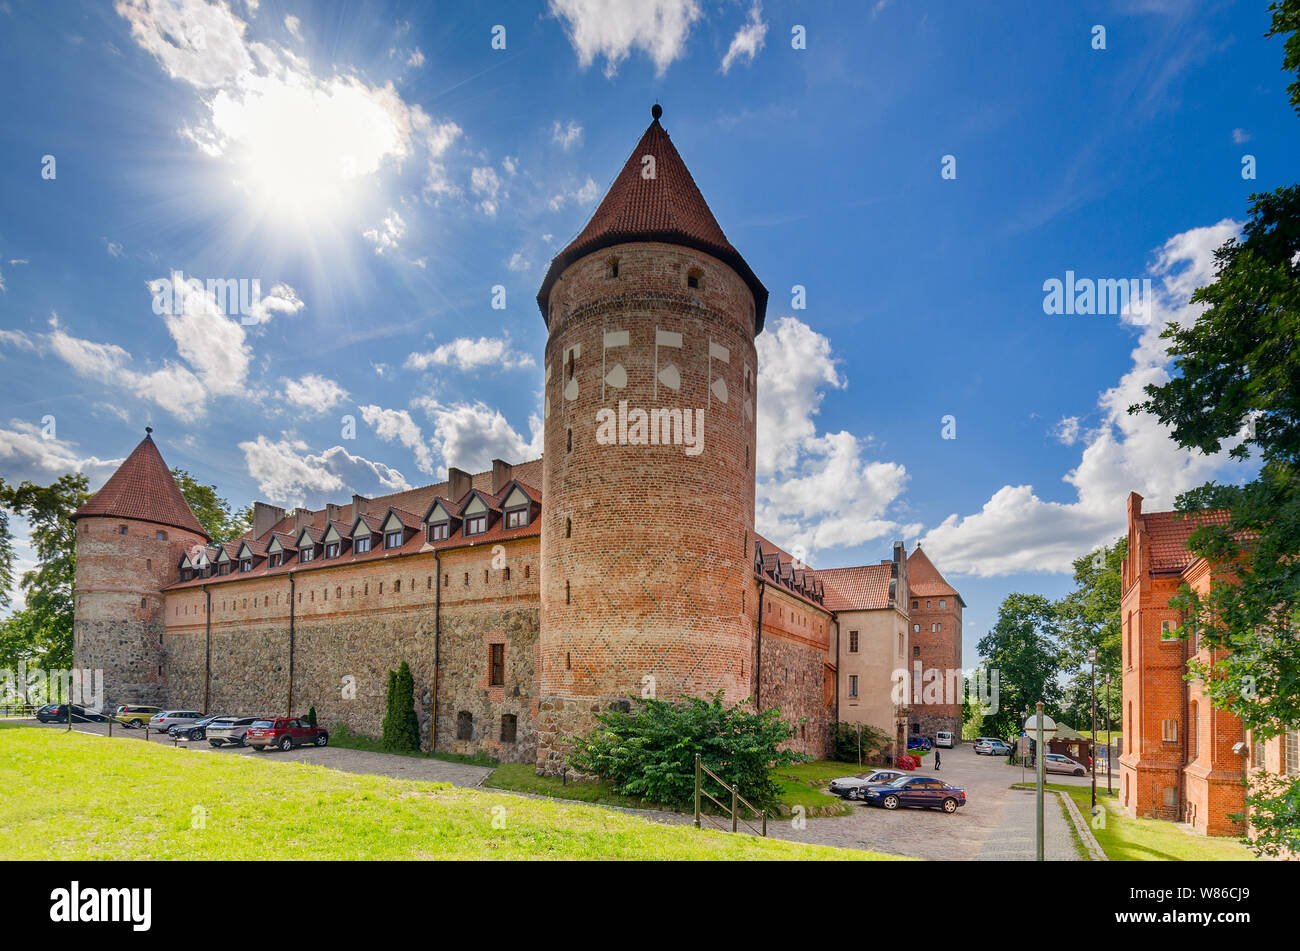 Bytow, pomeranian province, Poland, ger.: Butow. 14th cent. castle of the Teutonic Knights. Stock Photo